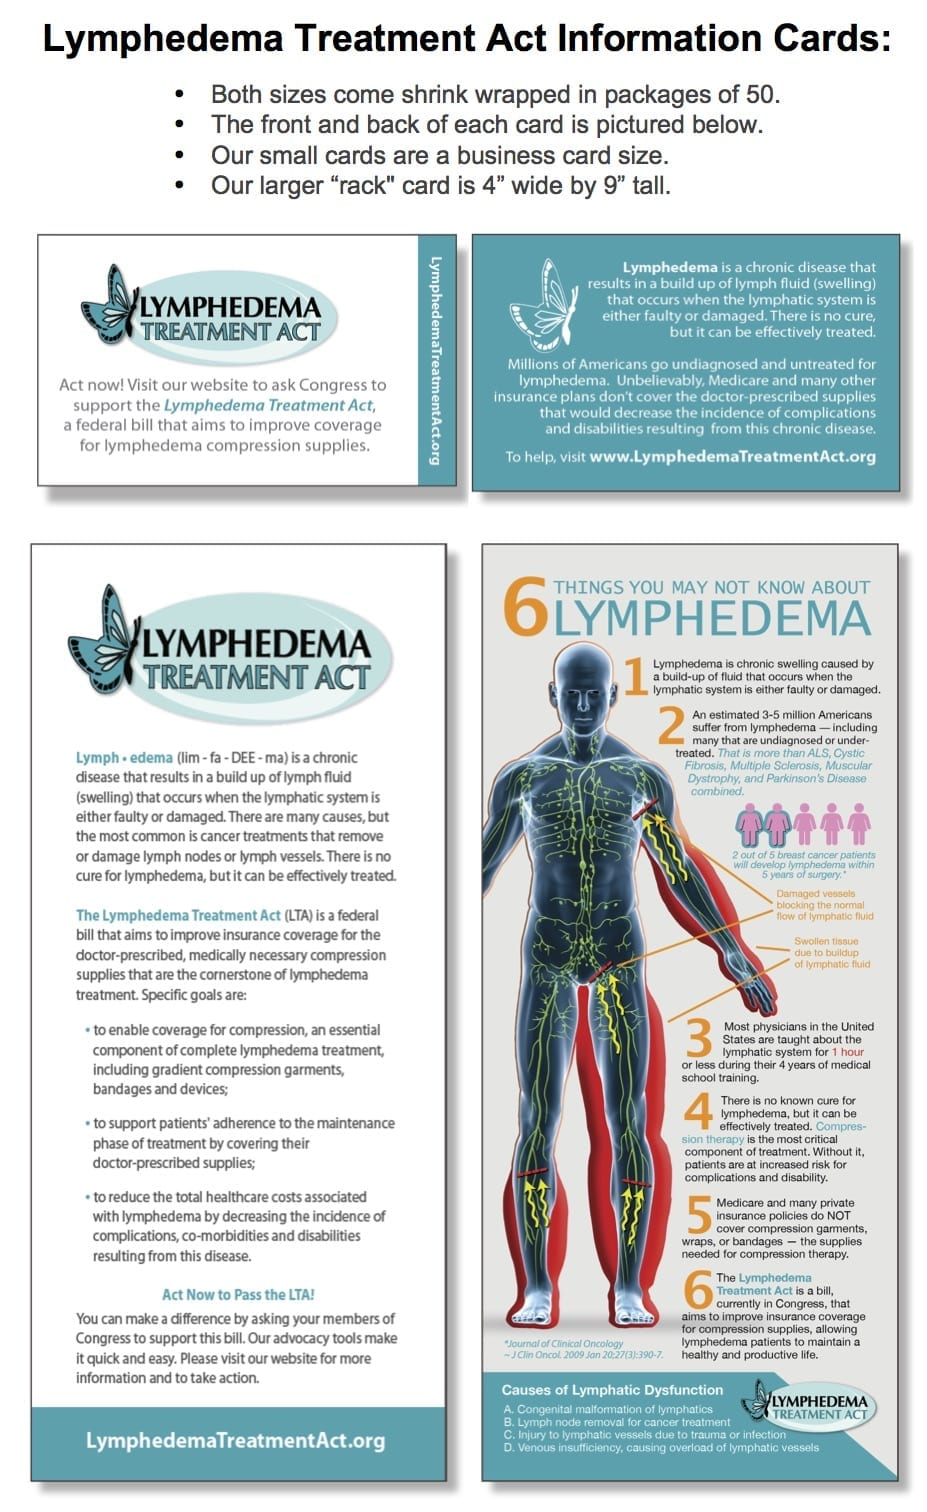 Lymphedema treatment act lta information card images 2 reheart Choice Image